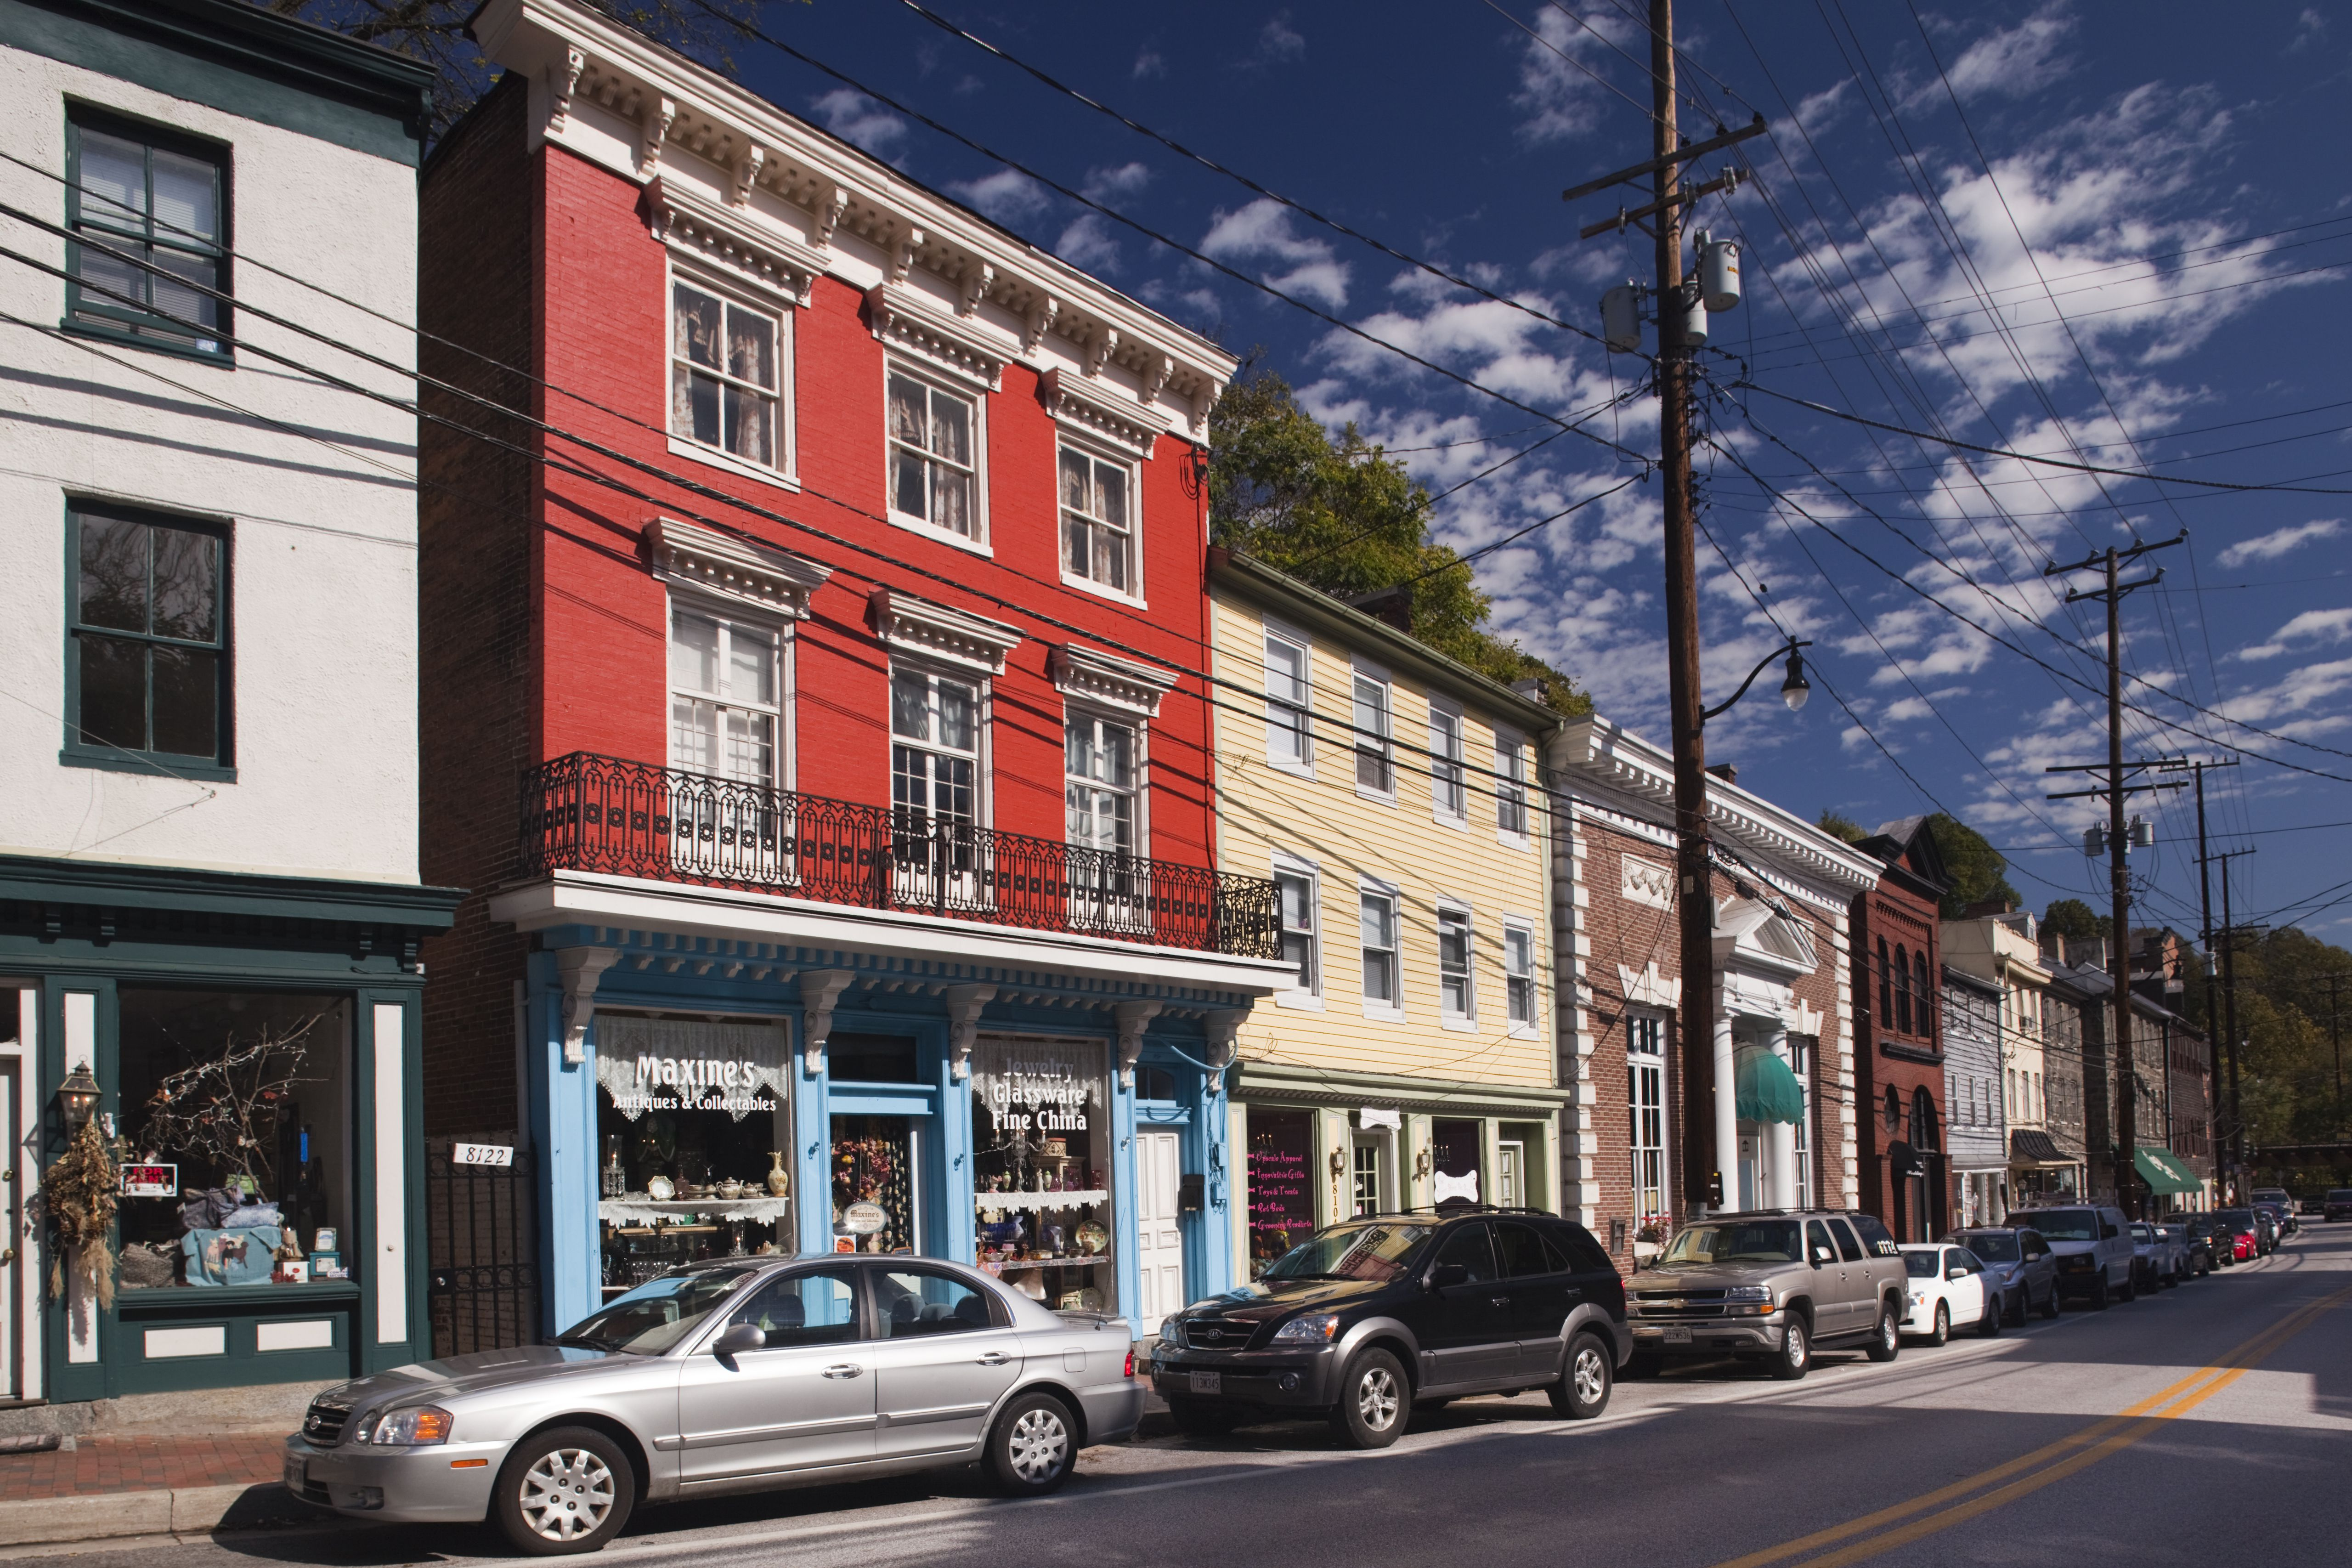 former mill town now antique center ellicott city maryland usa 58e3a6583df78c5162f6815b